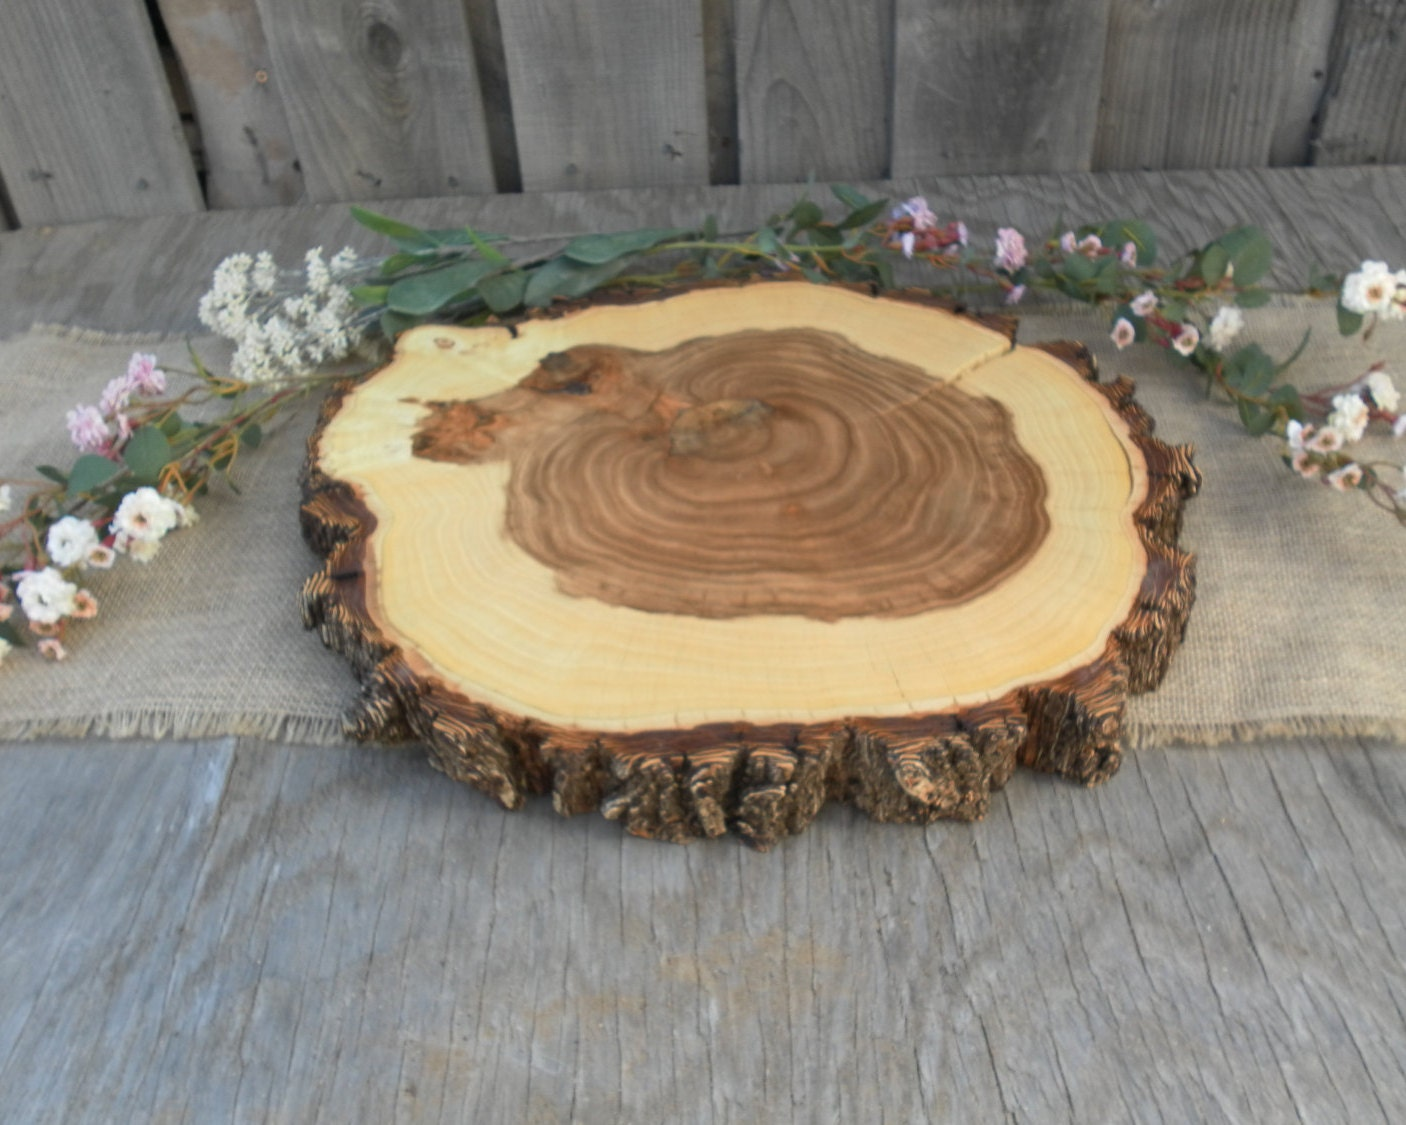 Rustic Wedding Wood Cake Stand: 15 Wood Slice Rustic Wedding Cake Stand Large Wood